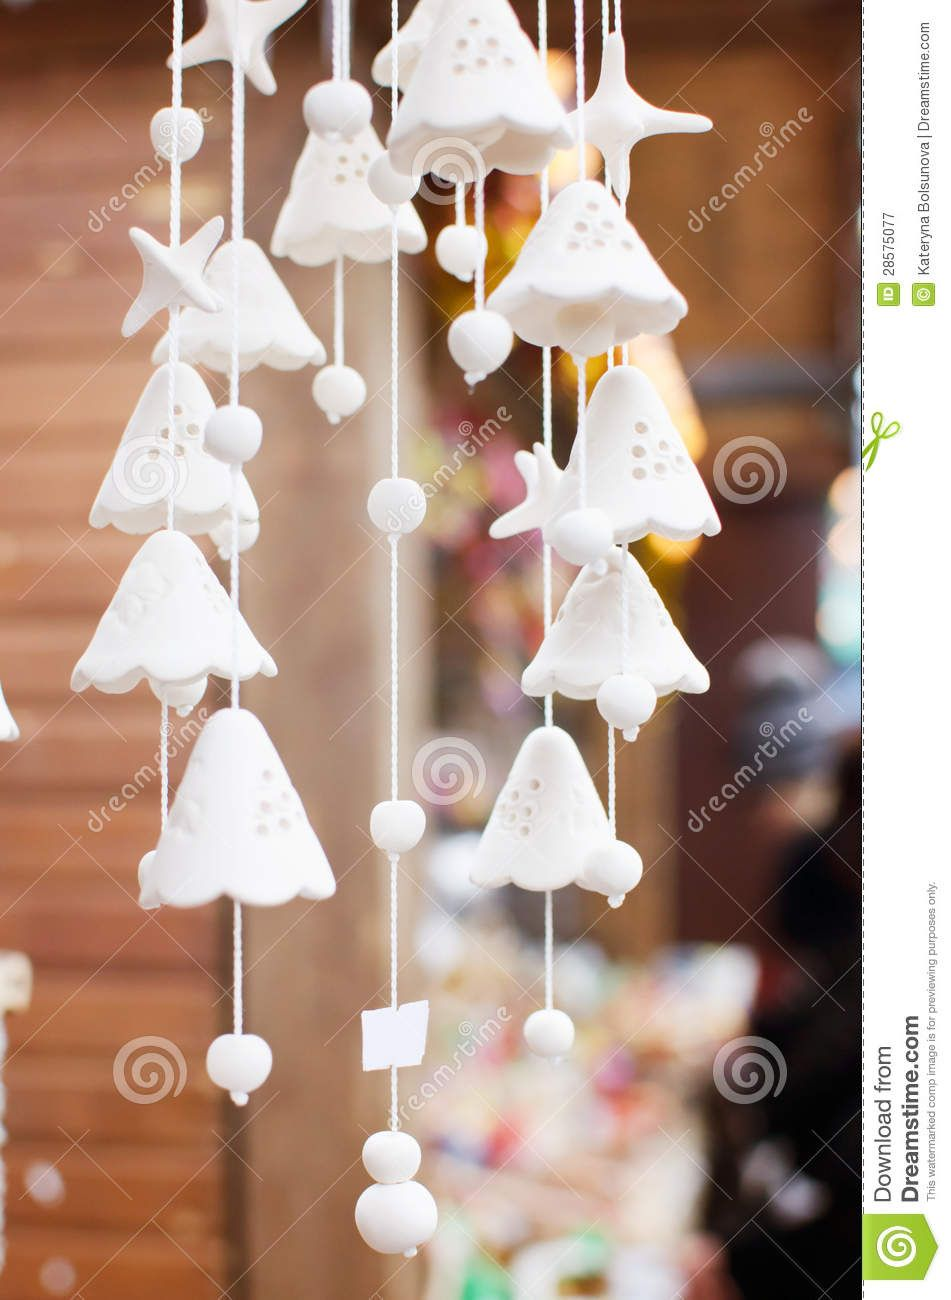 Ceramic Wind Chimes - Download From Over 63 Million High Quality